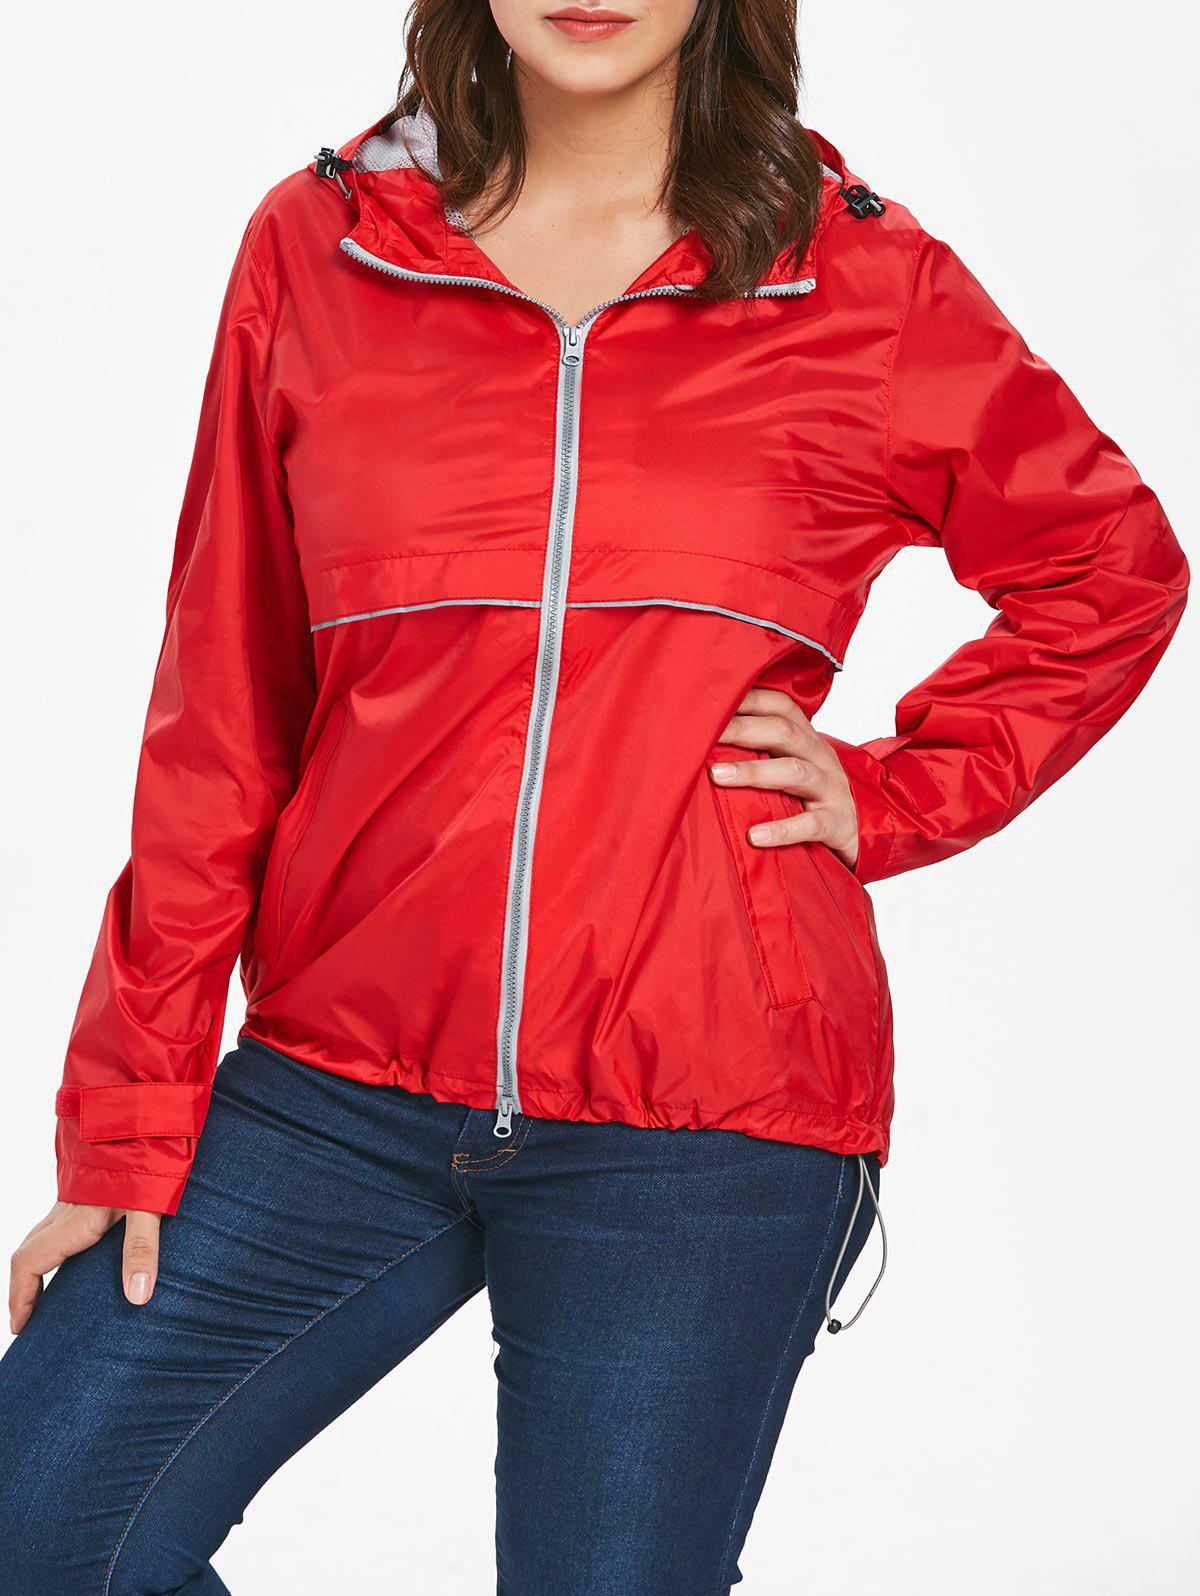 Plus Size Hooded Lightweight Zip-Up Jacket - RED 1X